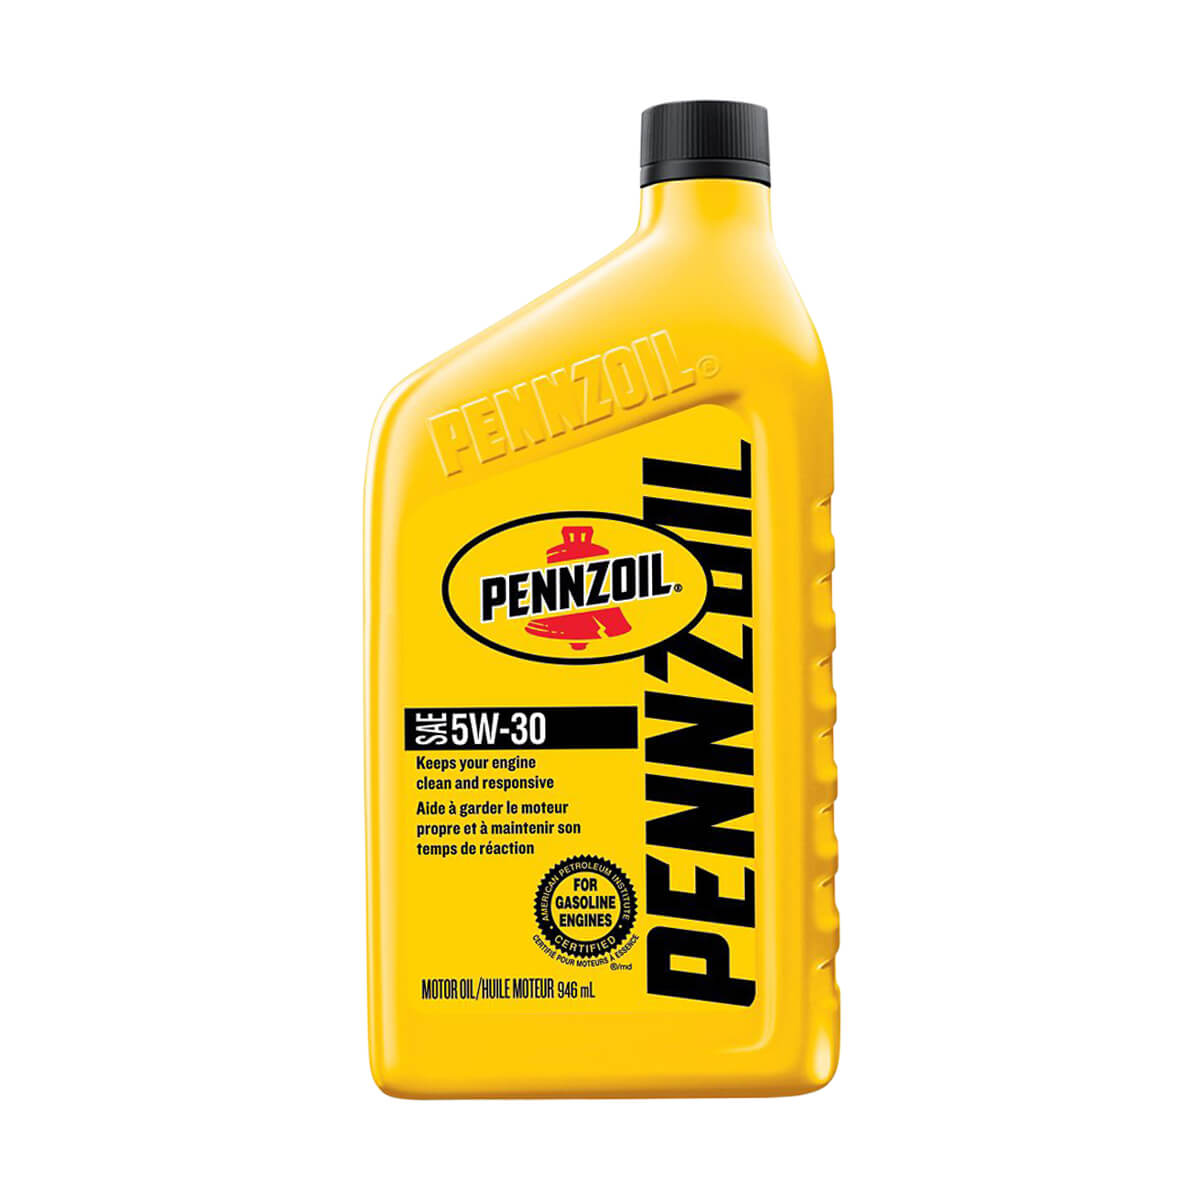 Shell Pennzoil 5W-30 - 946 ml